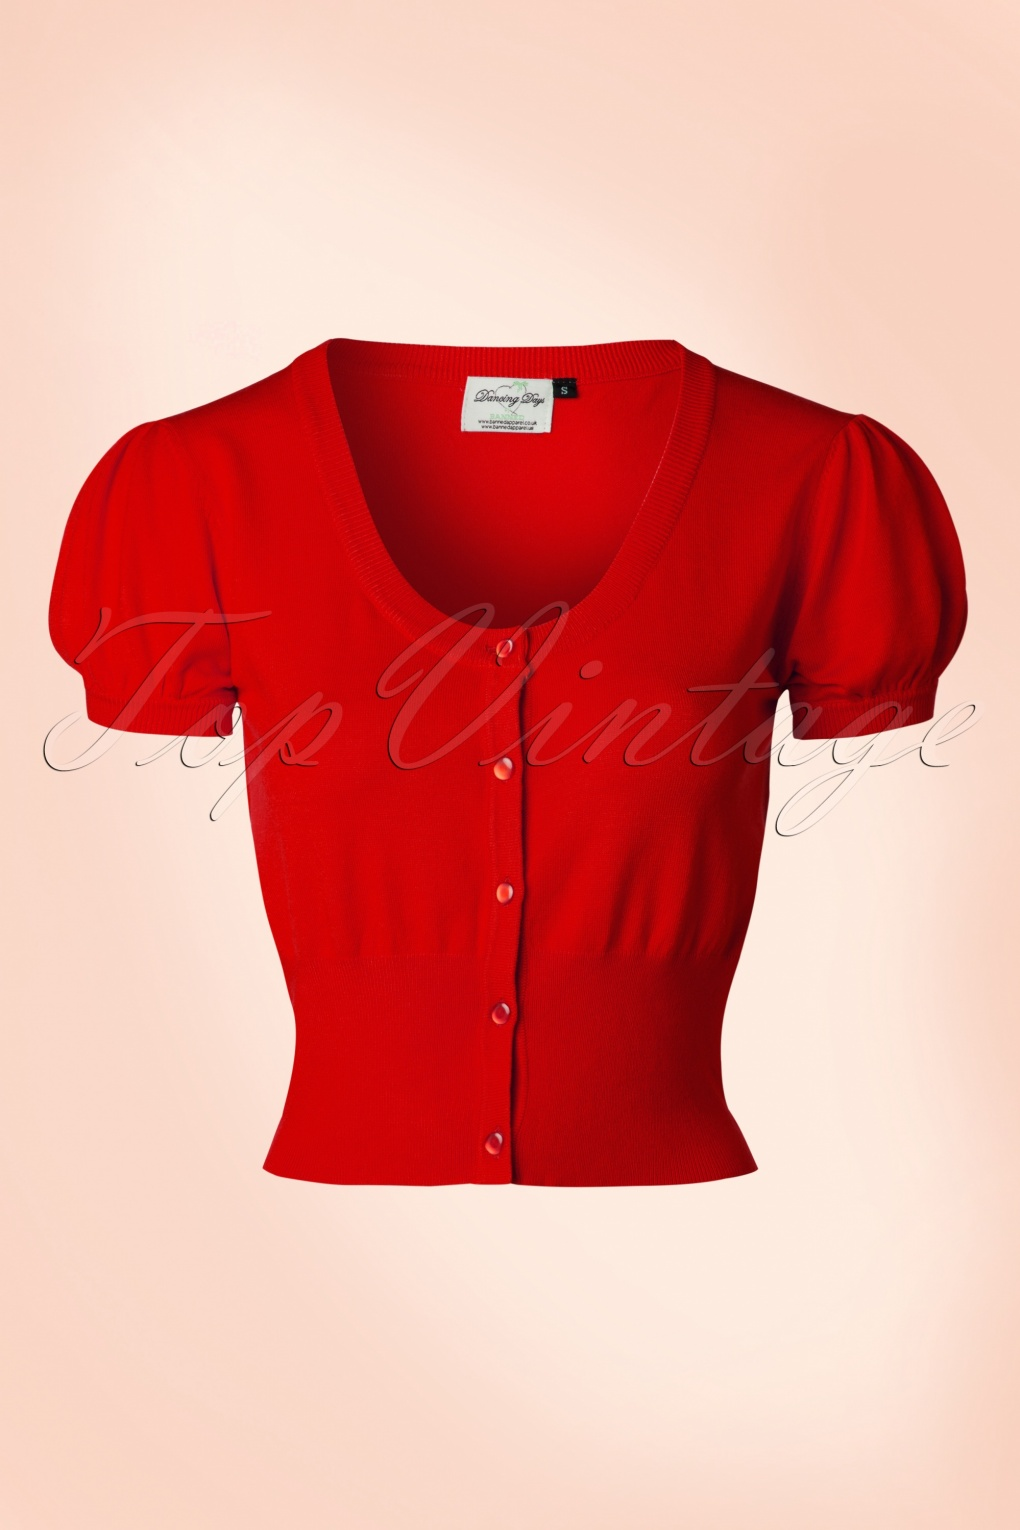 1940s Blouses, Shirts and Tops Fashion History 40s Grace Cardigan in Red £30.36 AT vintagedancer.com